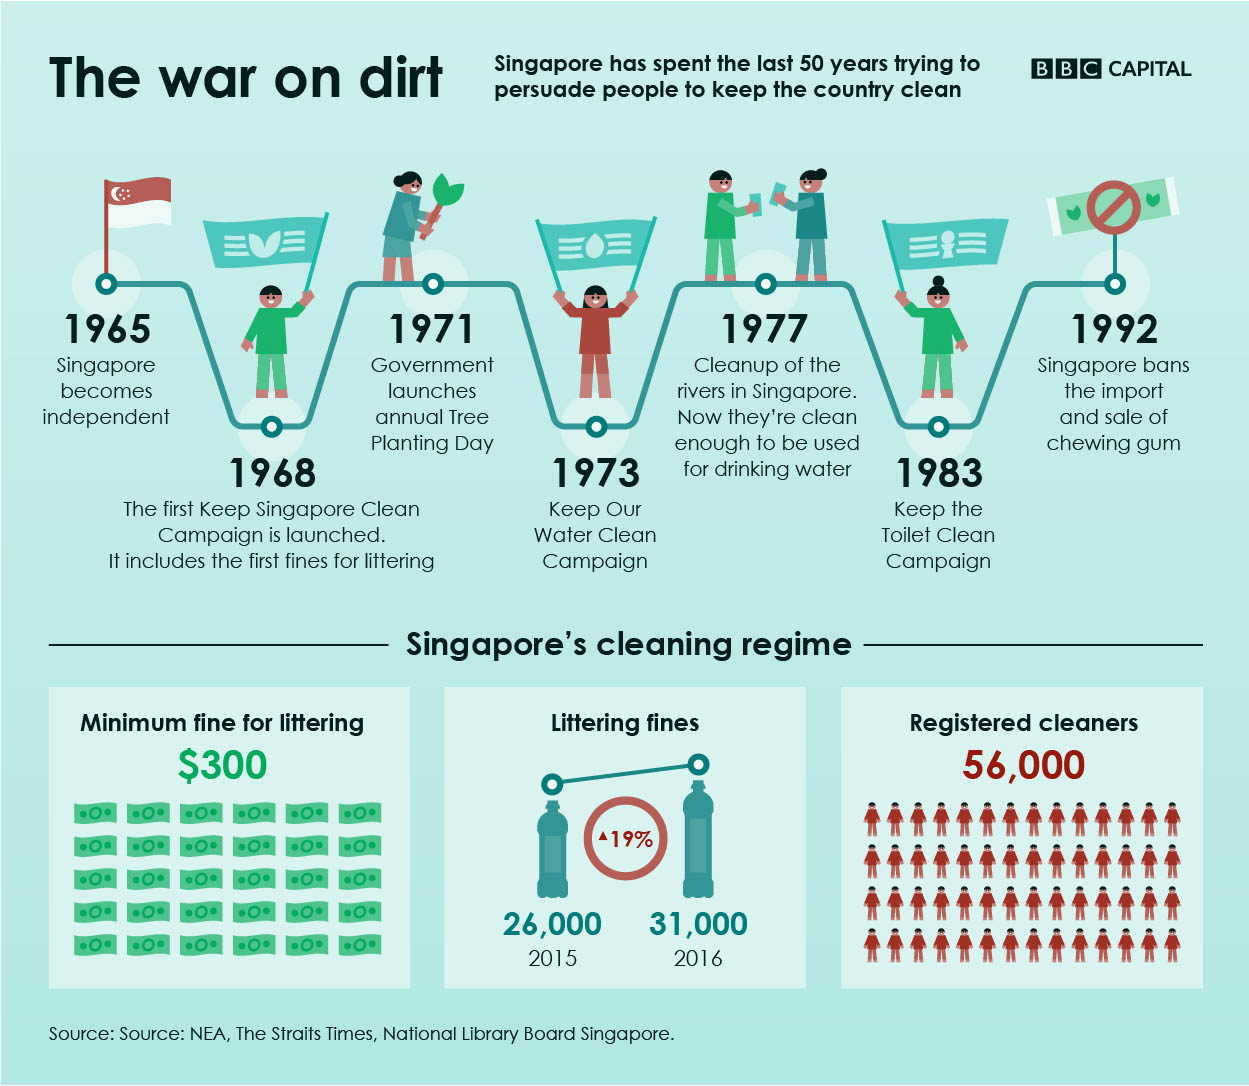 the war on dirt